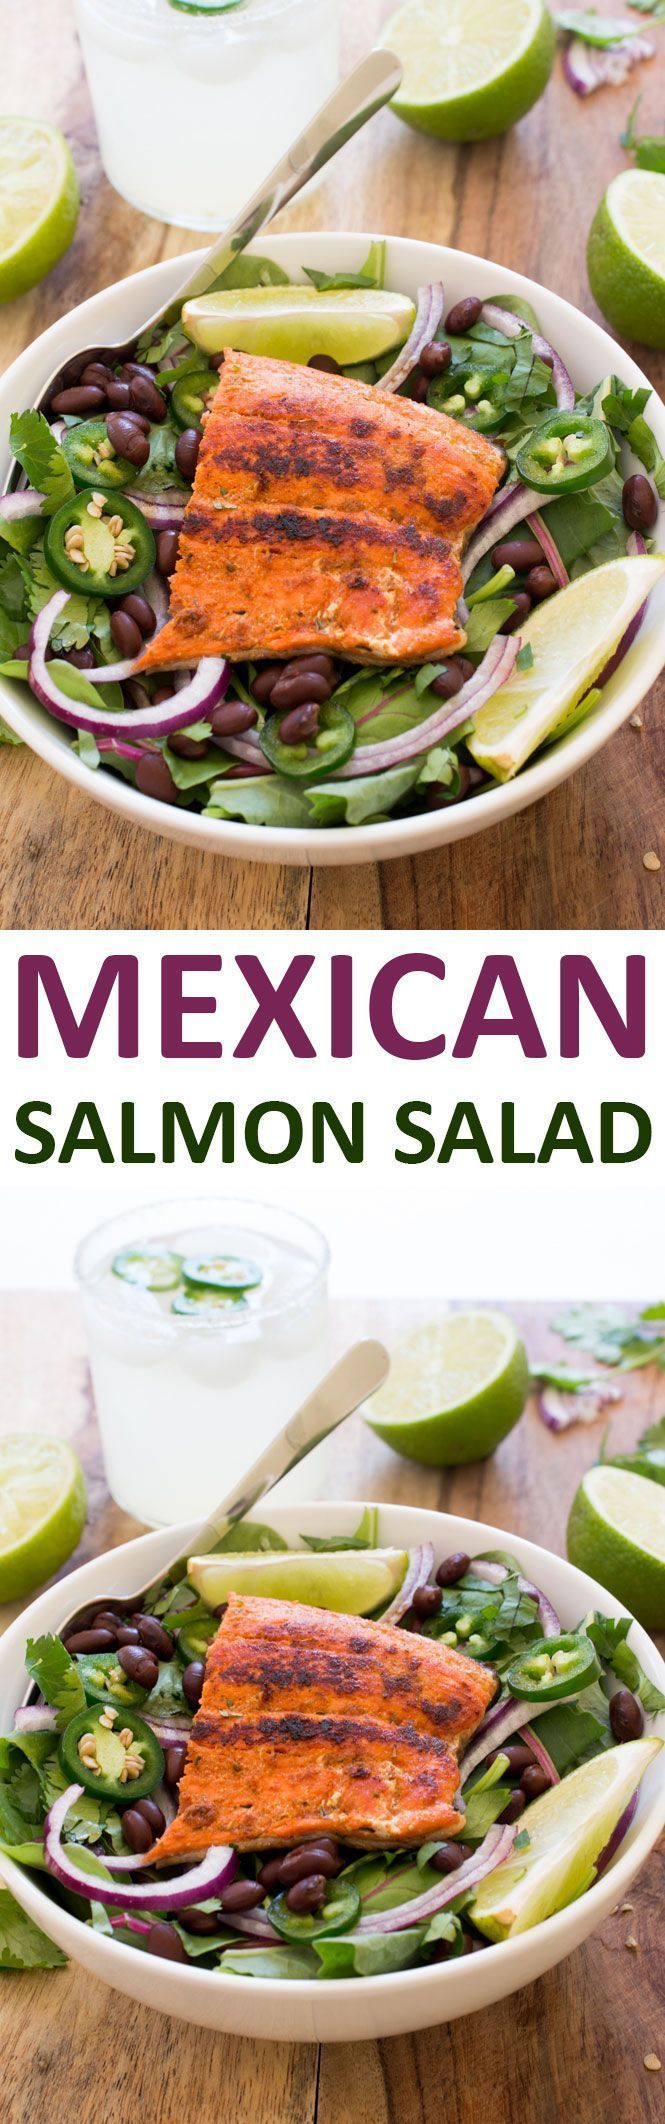 Mexican Salmon Salad with a Creamy Cilantro Lime Dressing. Full of flavor and ready in less than 20 minutes! Perfect for busy weeknights. | chefsavvy.com #recipe #salmon #salad #mexican